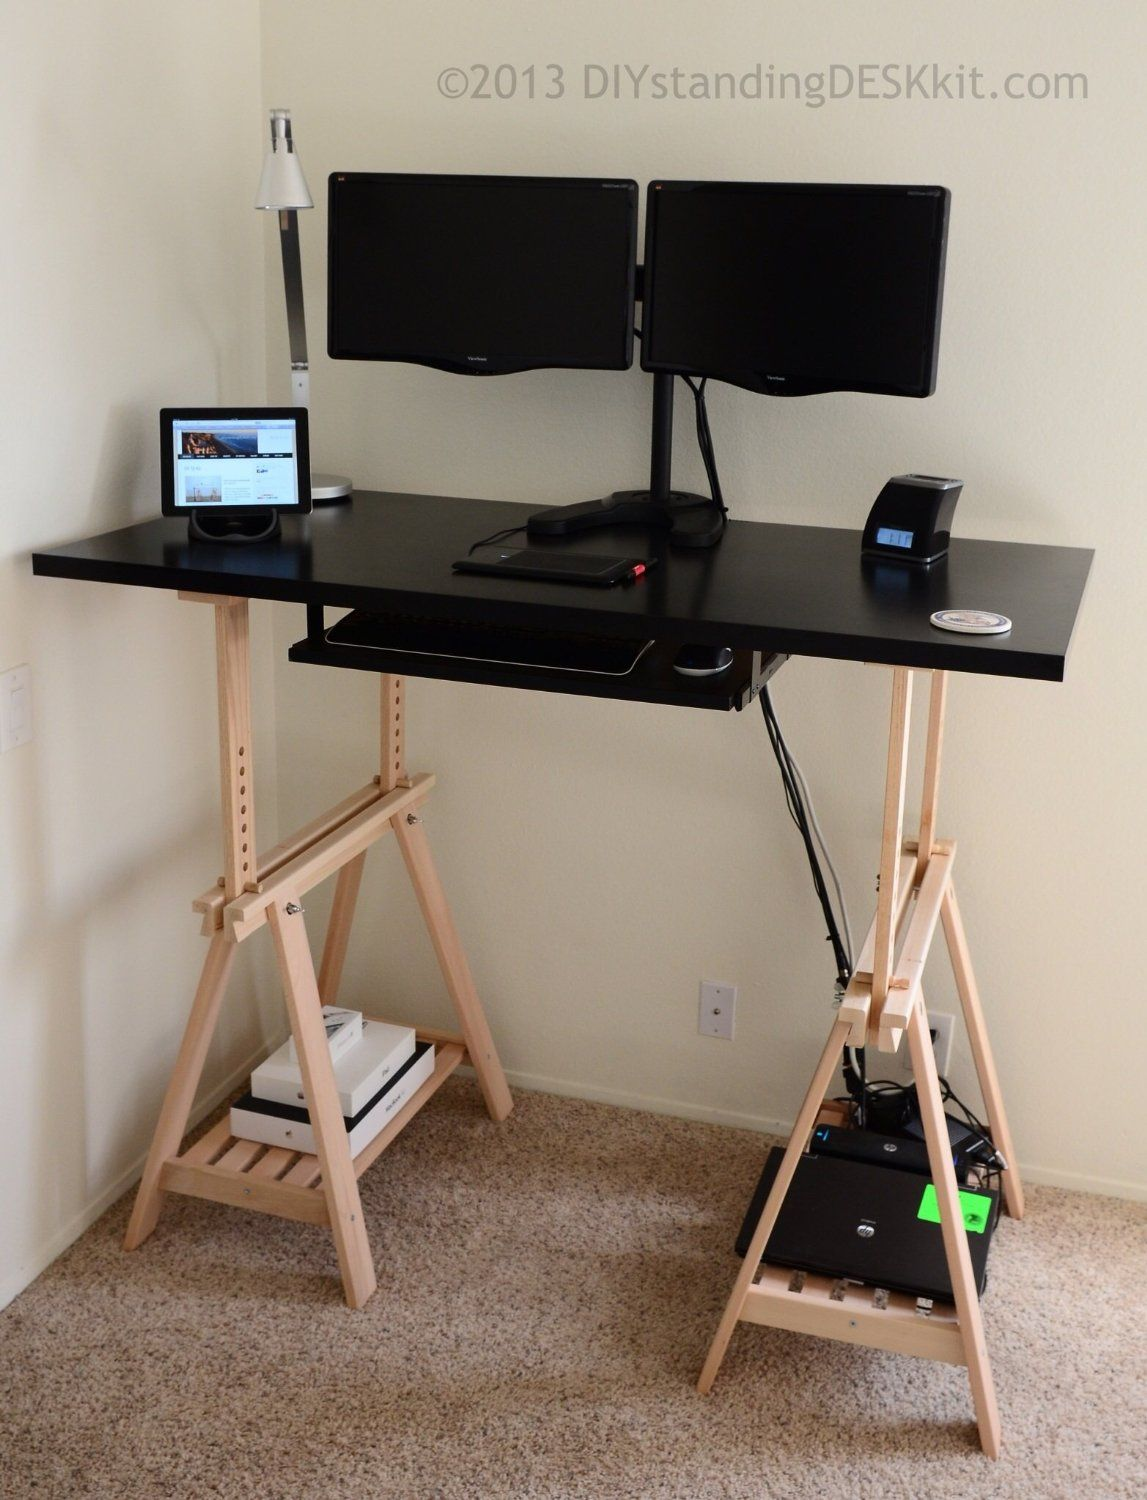 DIY Standing Desk Kit The Adjustable Hight Standing Desk Stand